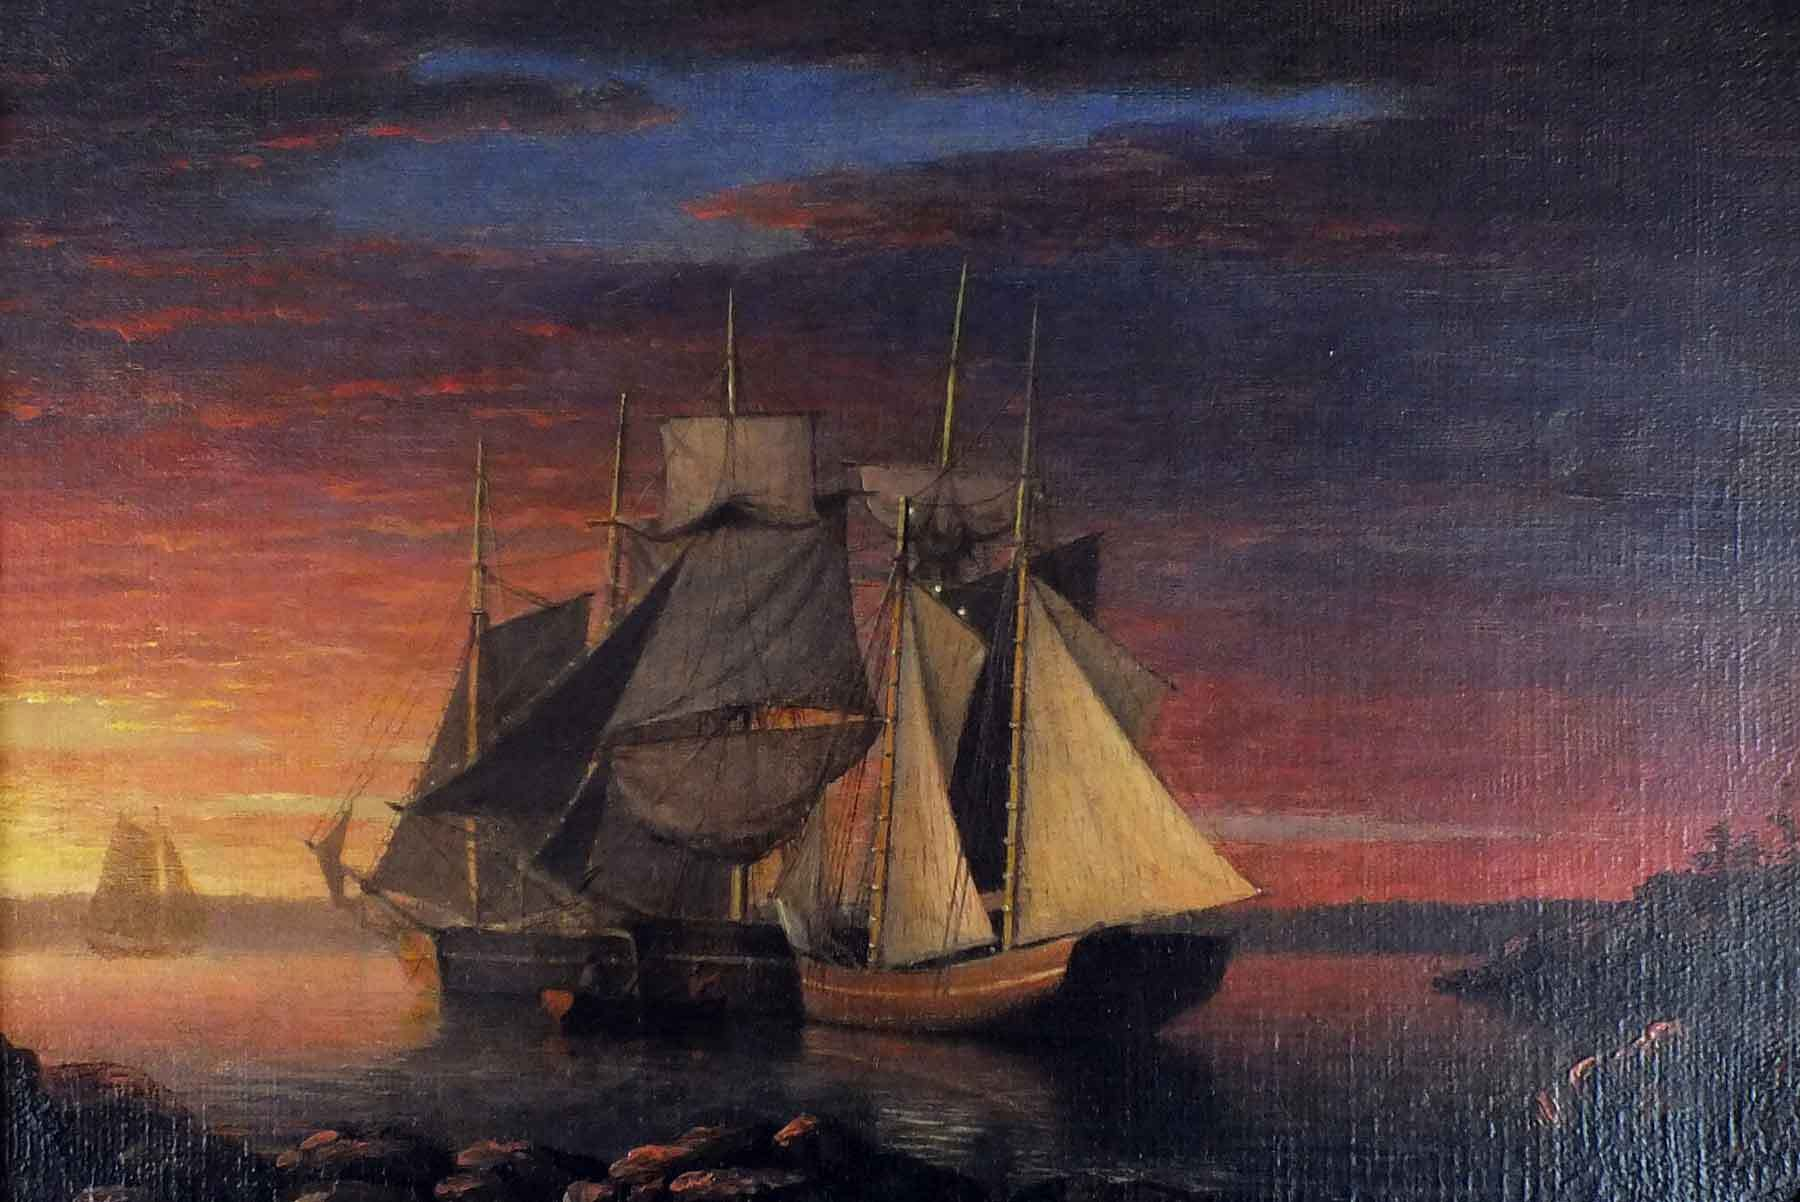 Square A painting of a ship on the ocean with a pink and purple sunset. Rigged Ships Anchored at Sunset, about 1850. Oil on canvas.